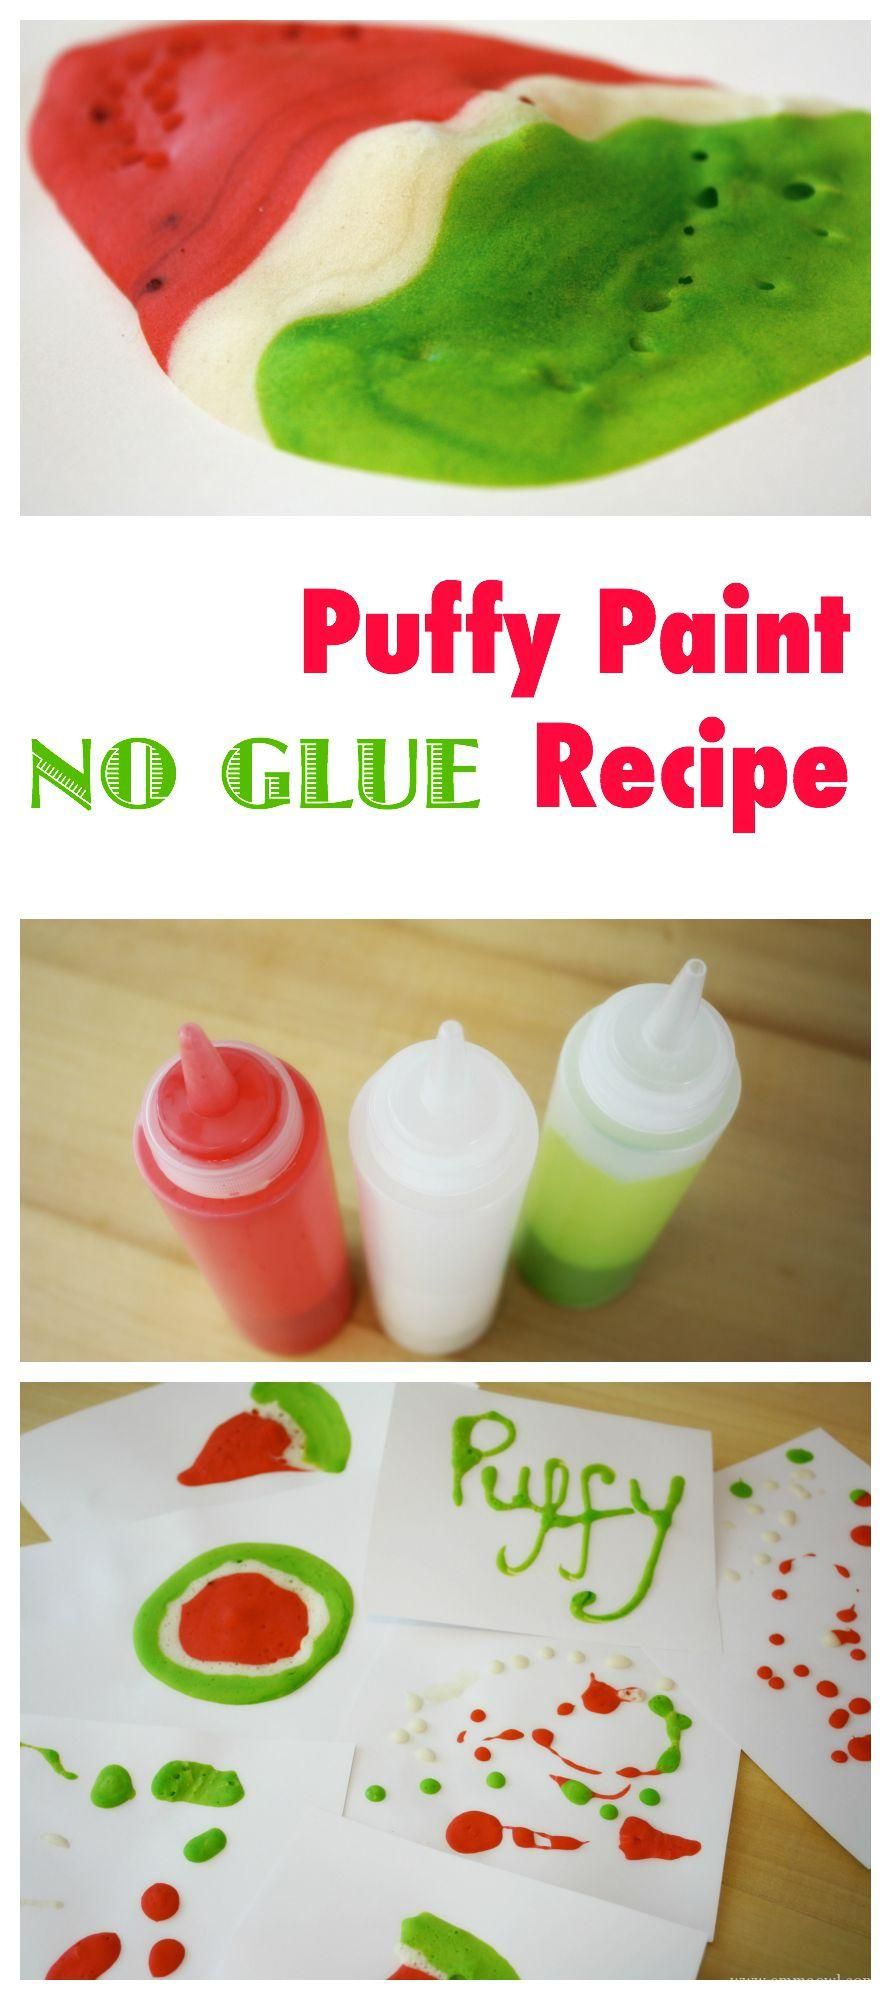 Awesome kids art material puffy paint recipe this one is a no awesome kids art material puffy paint recipe this one is a no glue recipe forumfinder Images